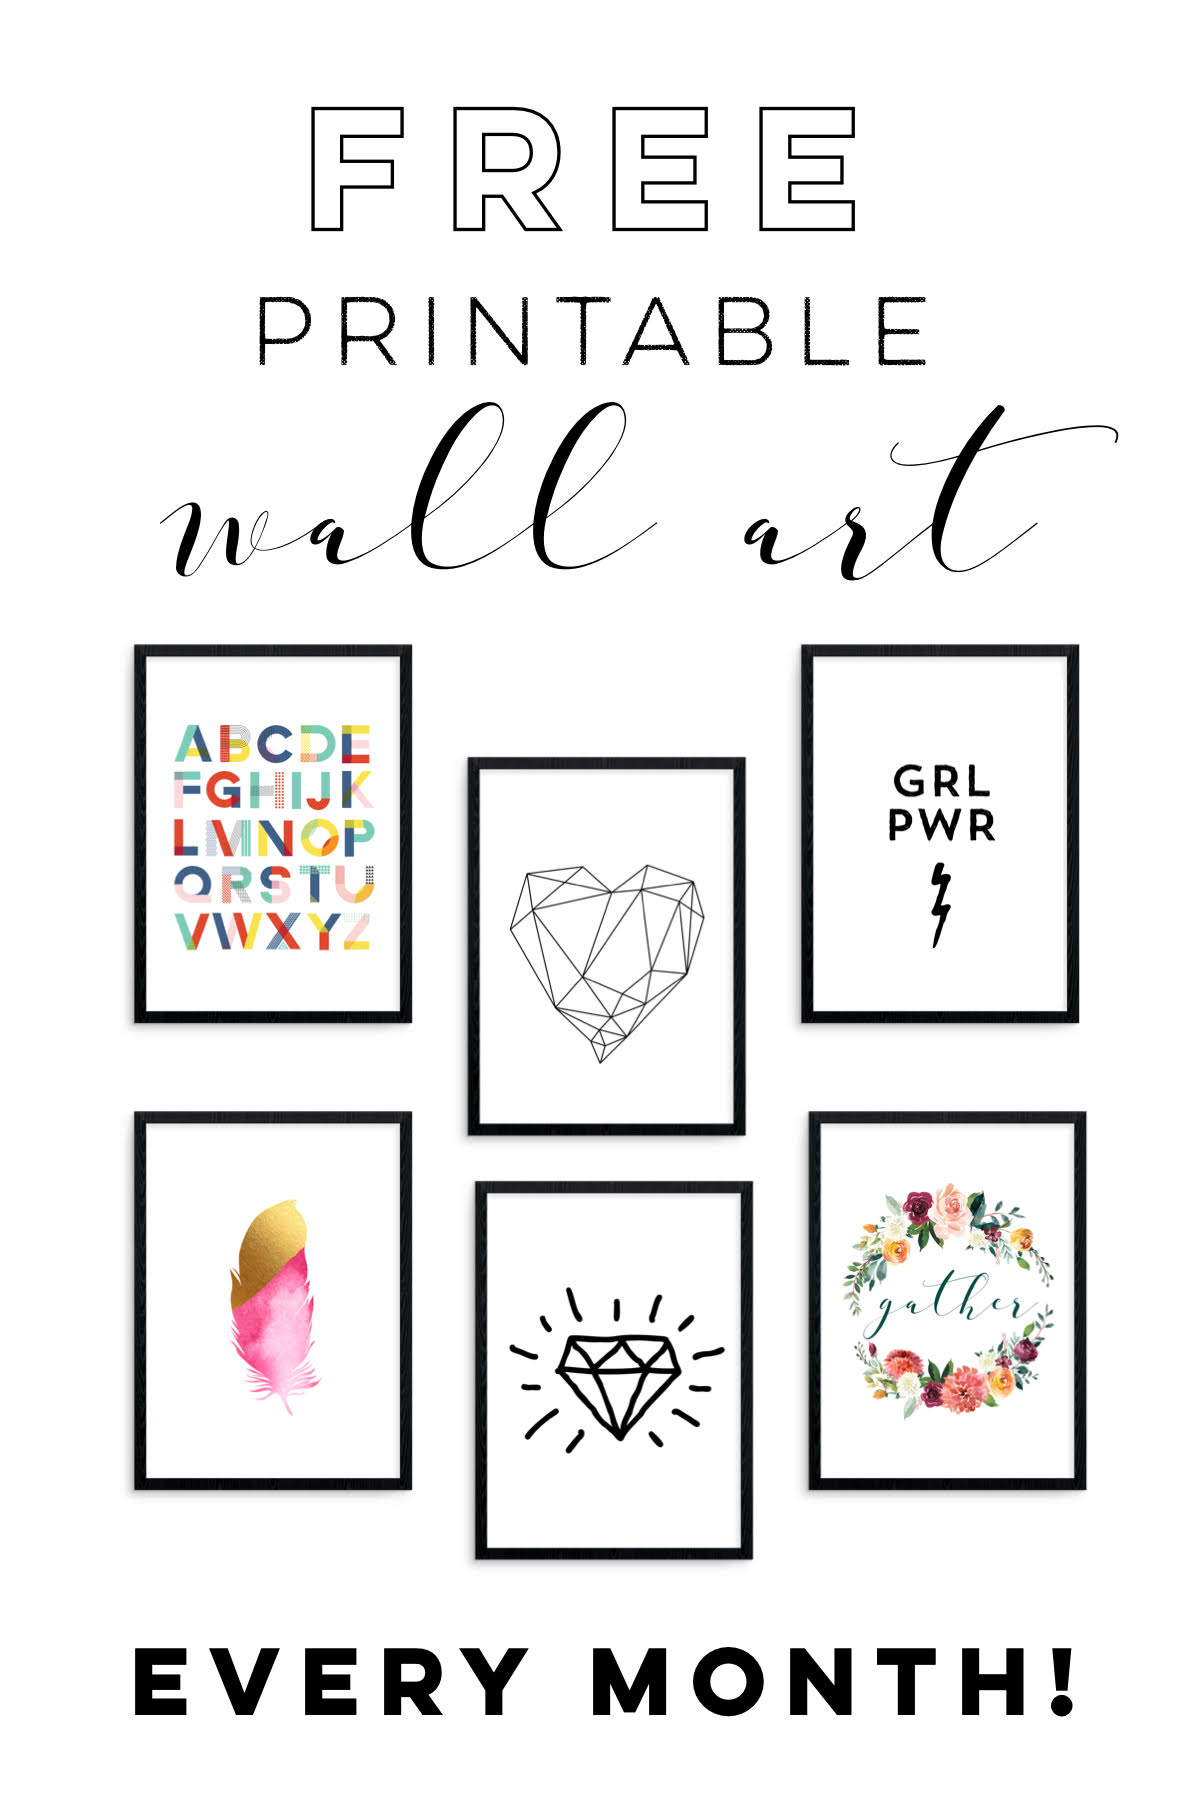 image relating to Free Printable Wall Art named Month-to-month Membership Support: Totally free Printable Wall Artwork towards